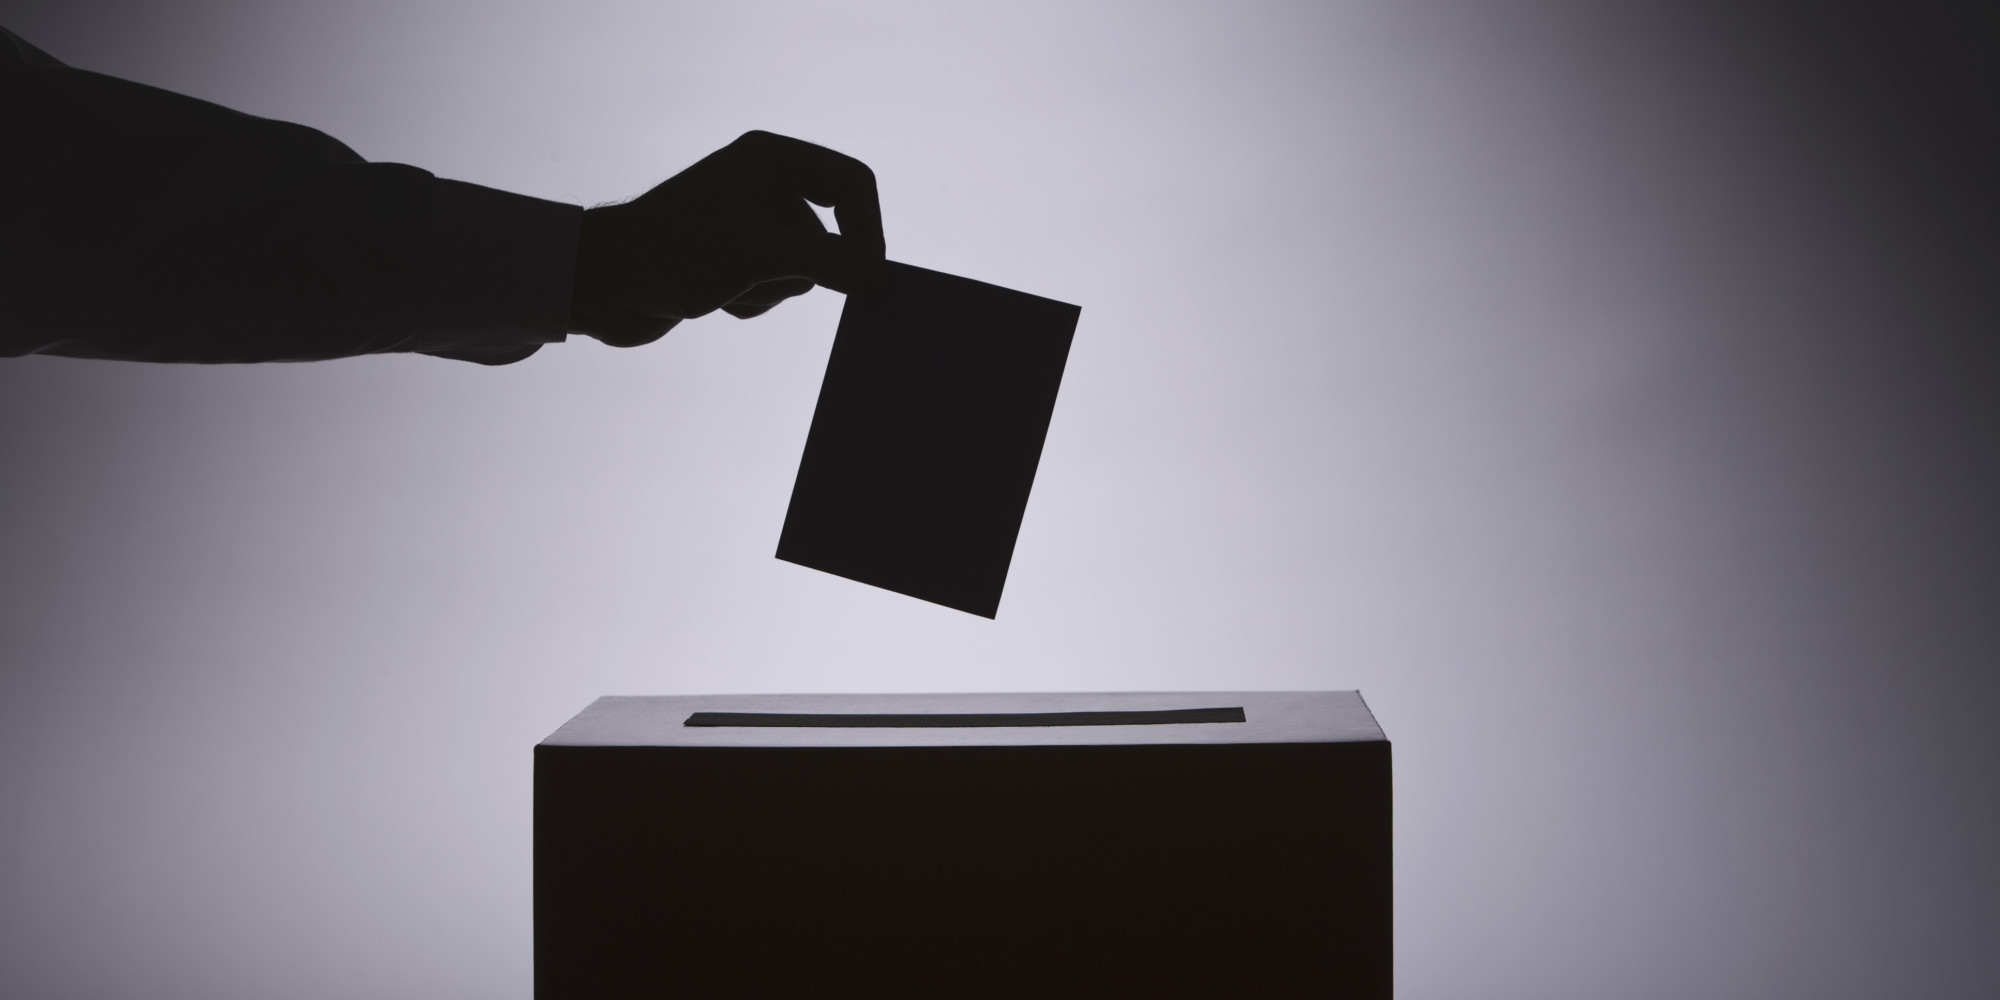 Final day to vote on BC's referendum on electoral reform